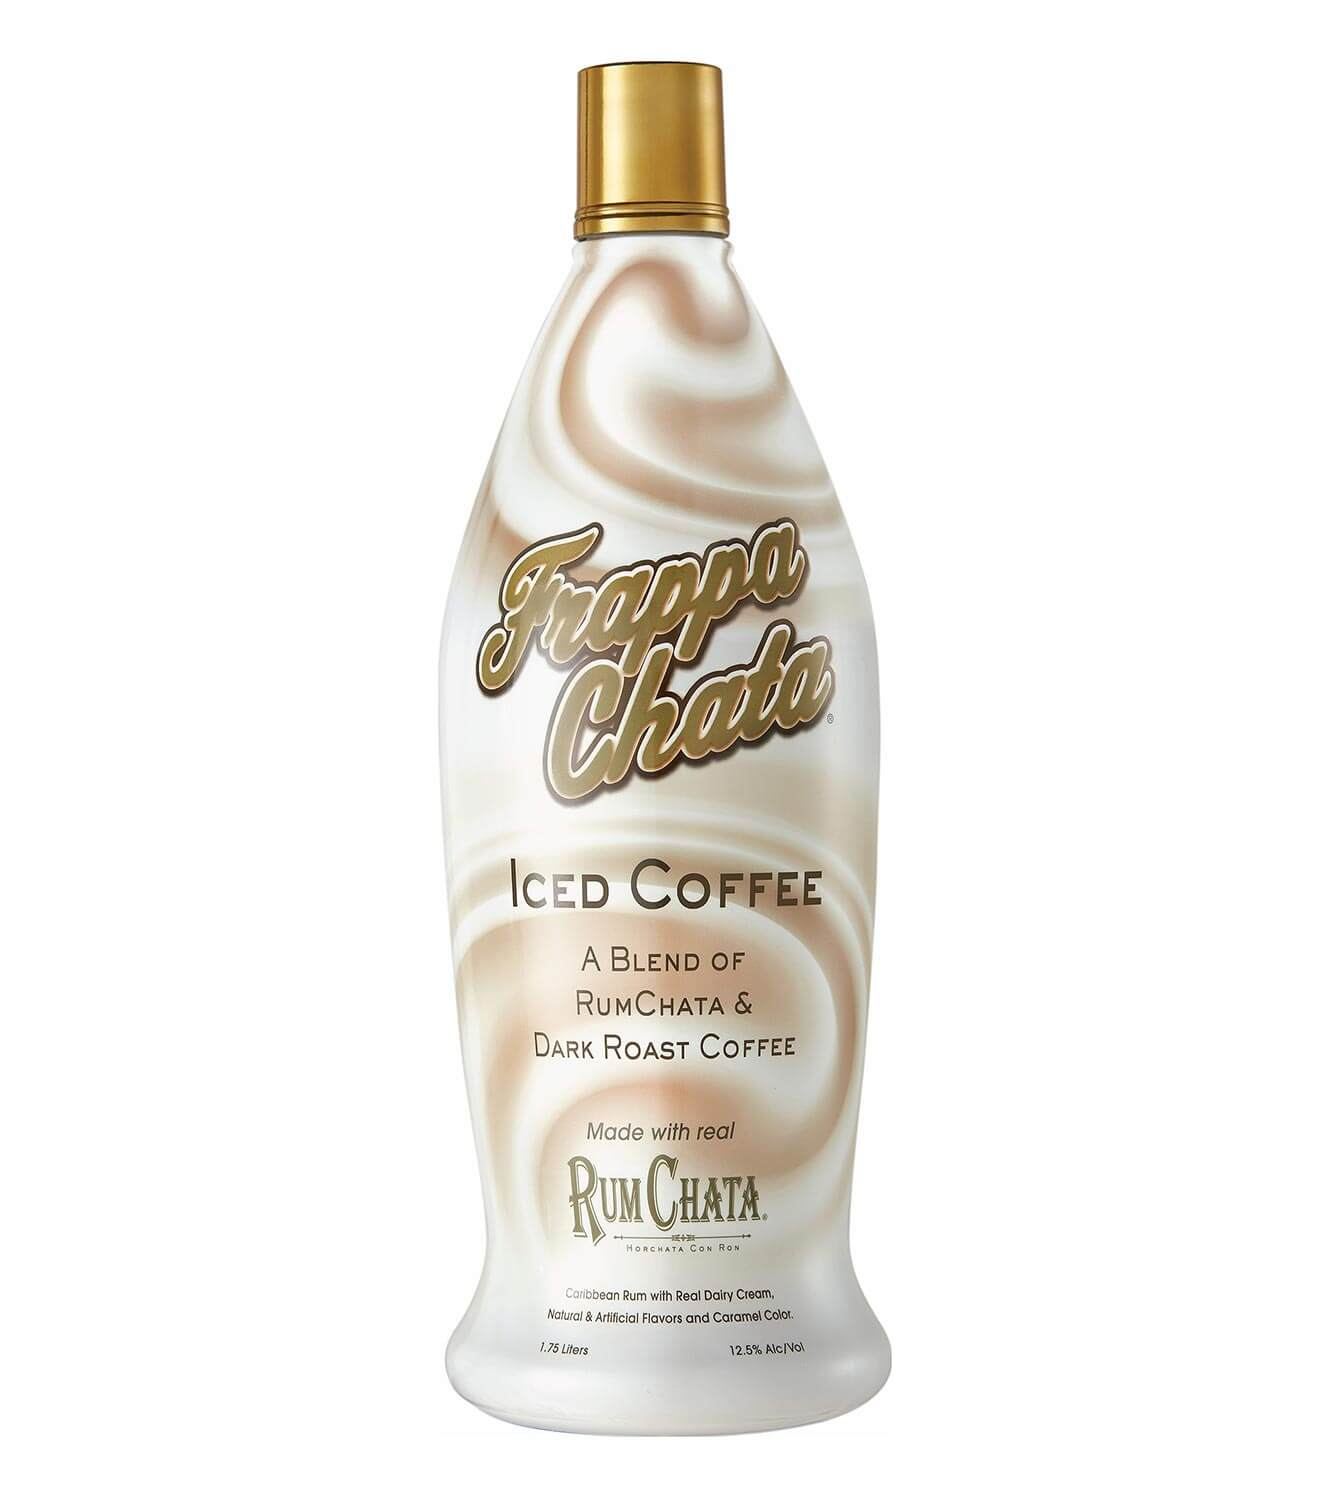 frappachatta bottle, rumchatta blended coffee to go